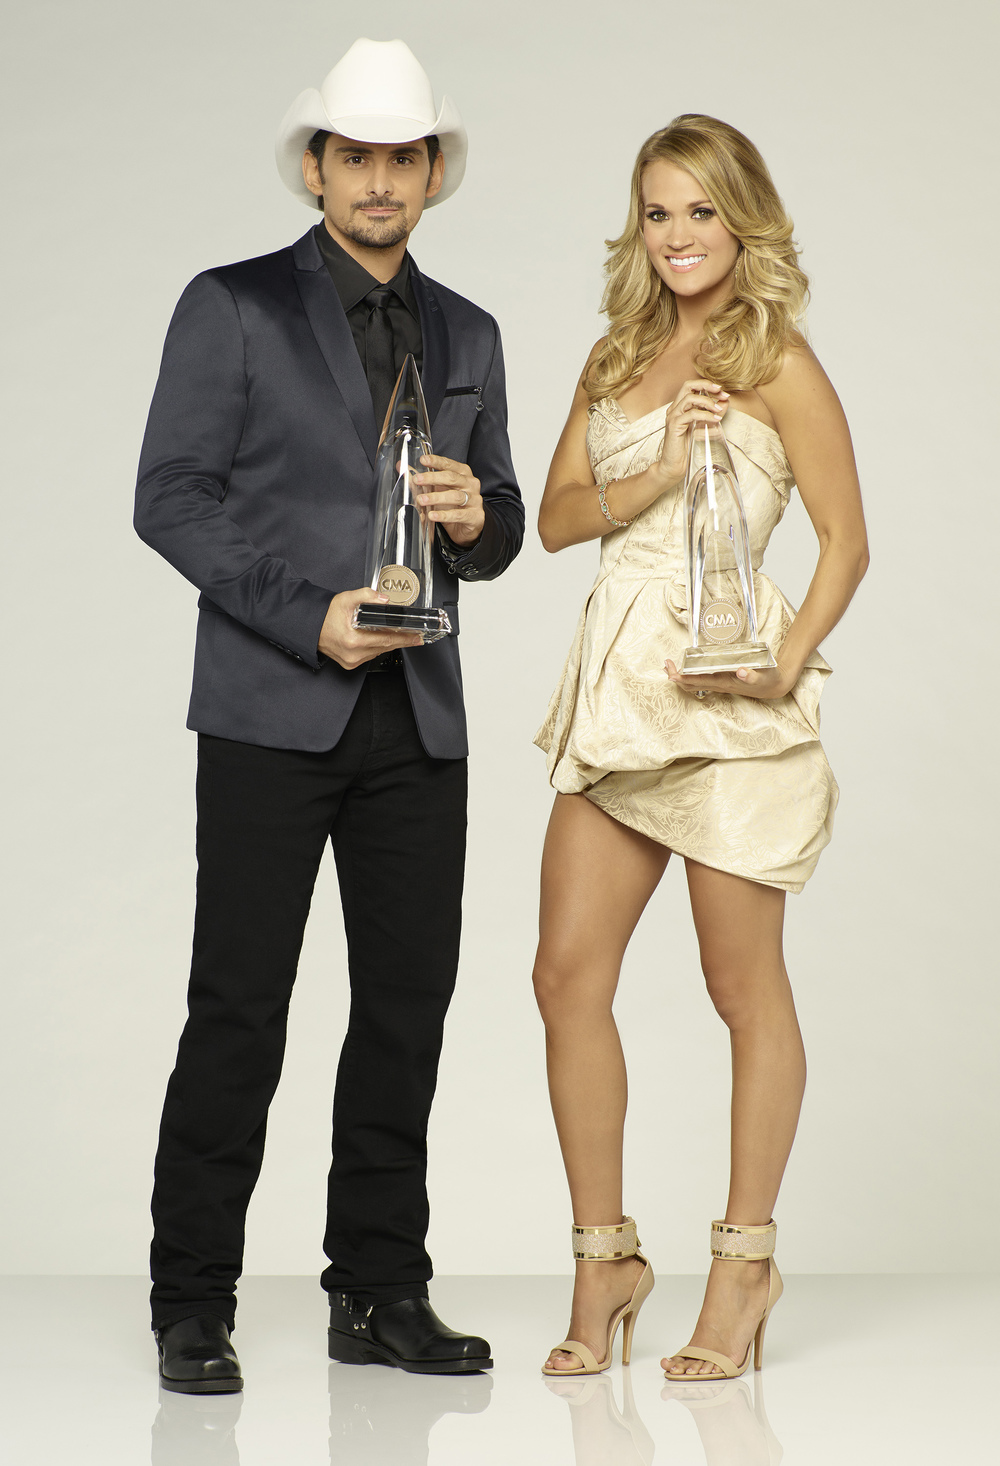 Hosts - Brad Paisley and Carrie Underwood  image - supplied/Foxtel